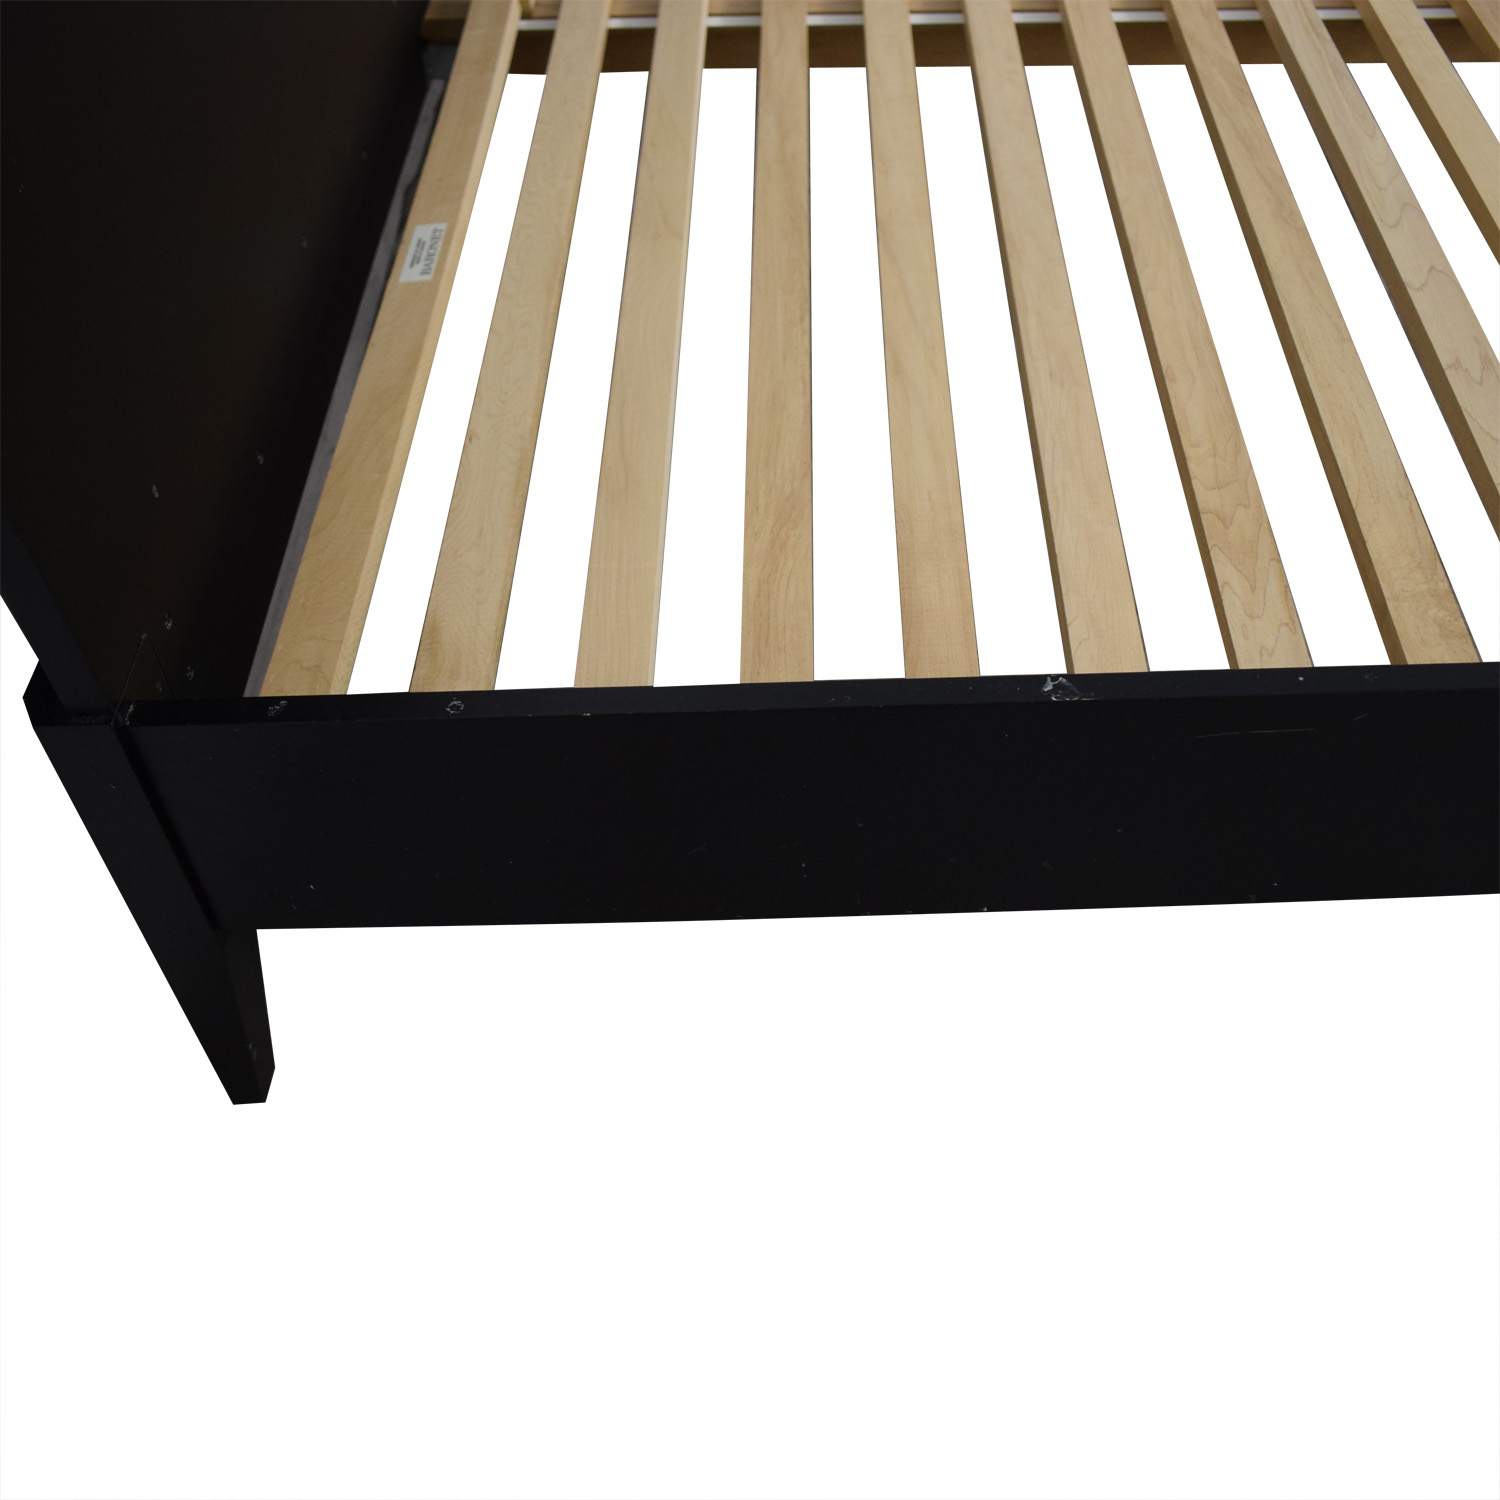 Baronet Baronet Wood King Bed Frame on sale